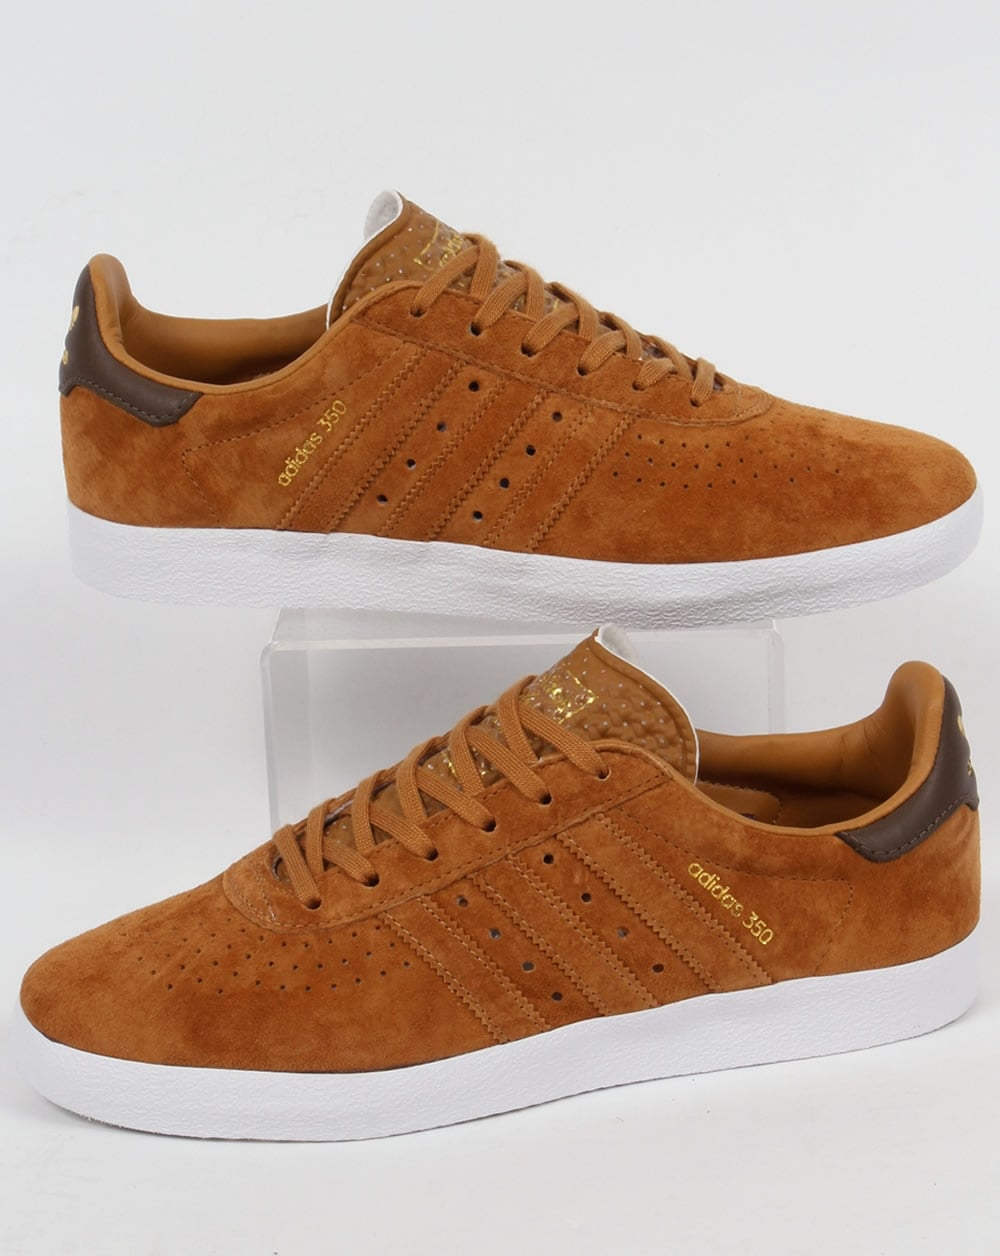 Adidas Trainers Adidas 350 Trainers Deep Tan / Brown